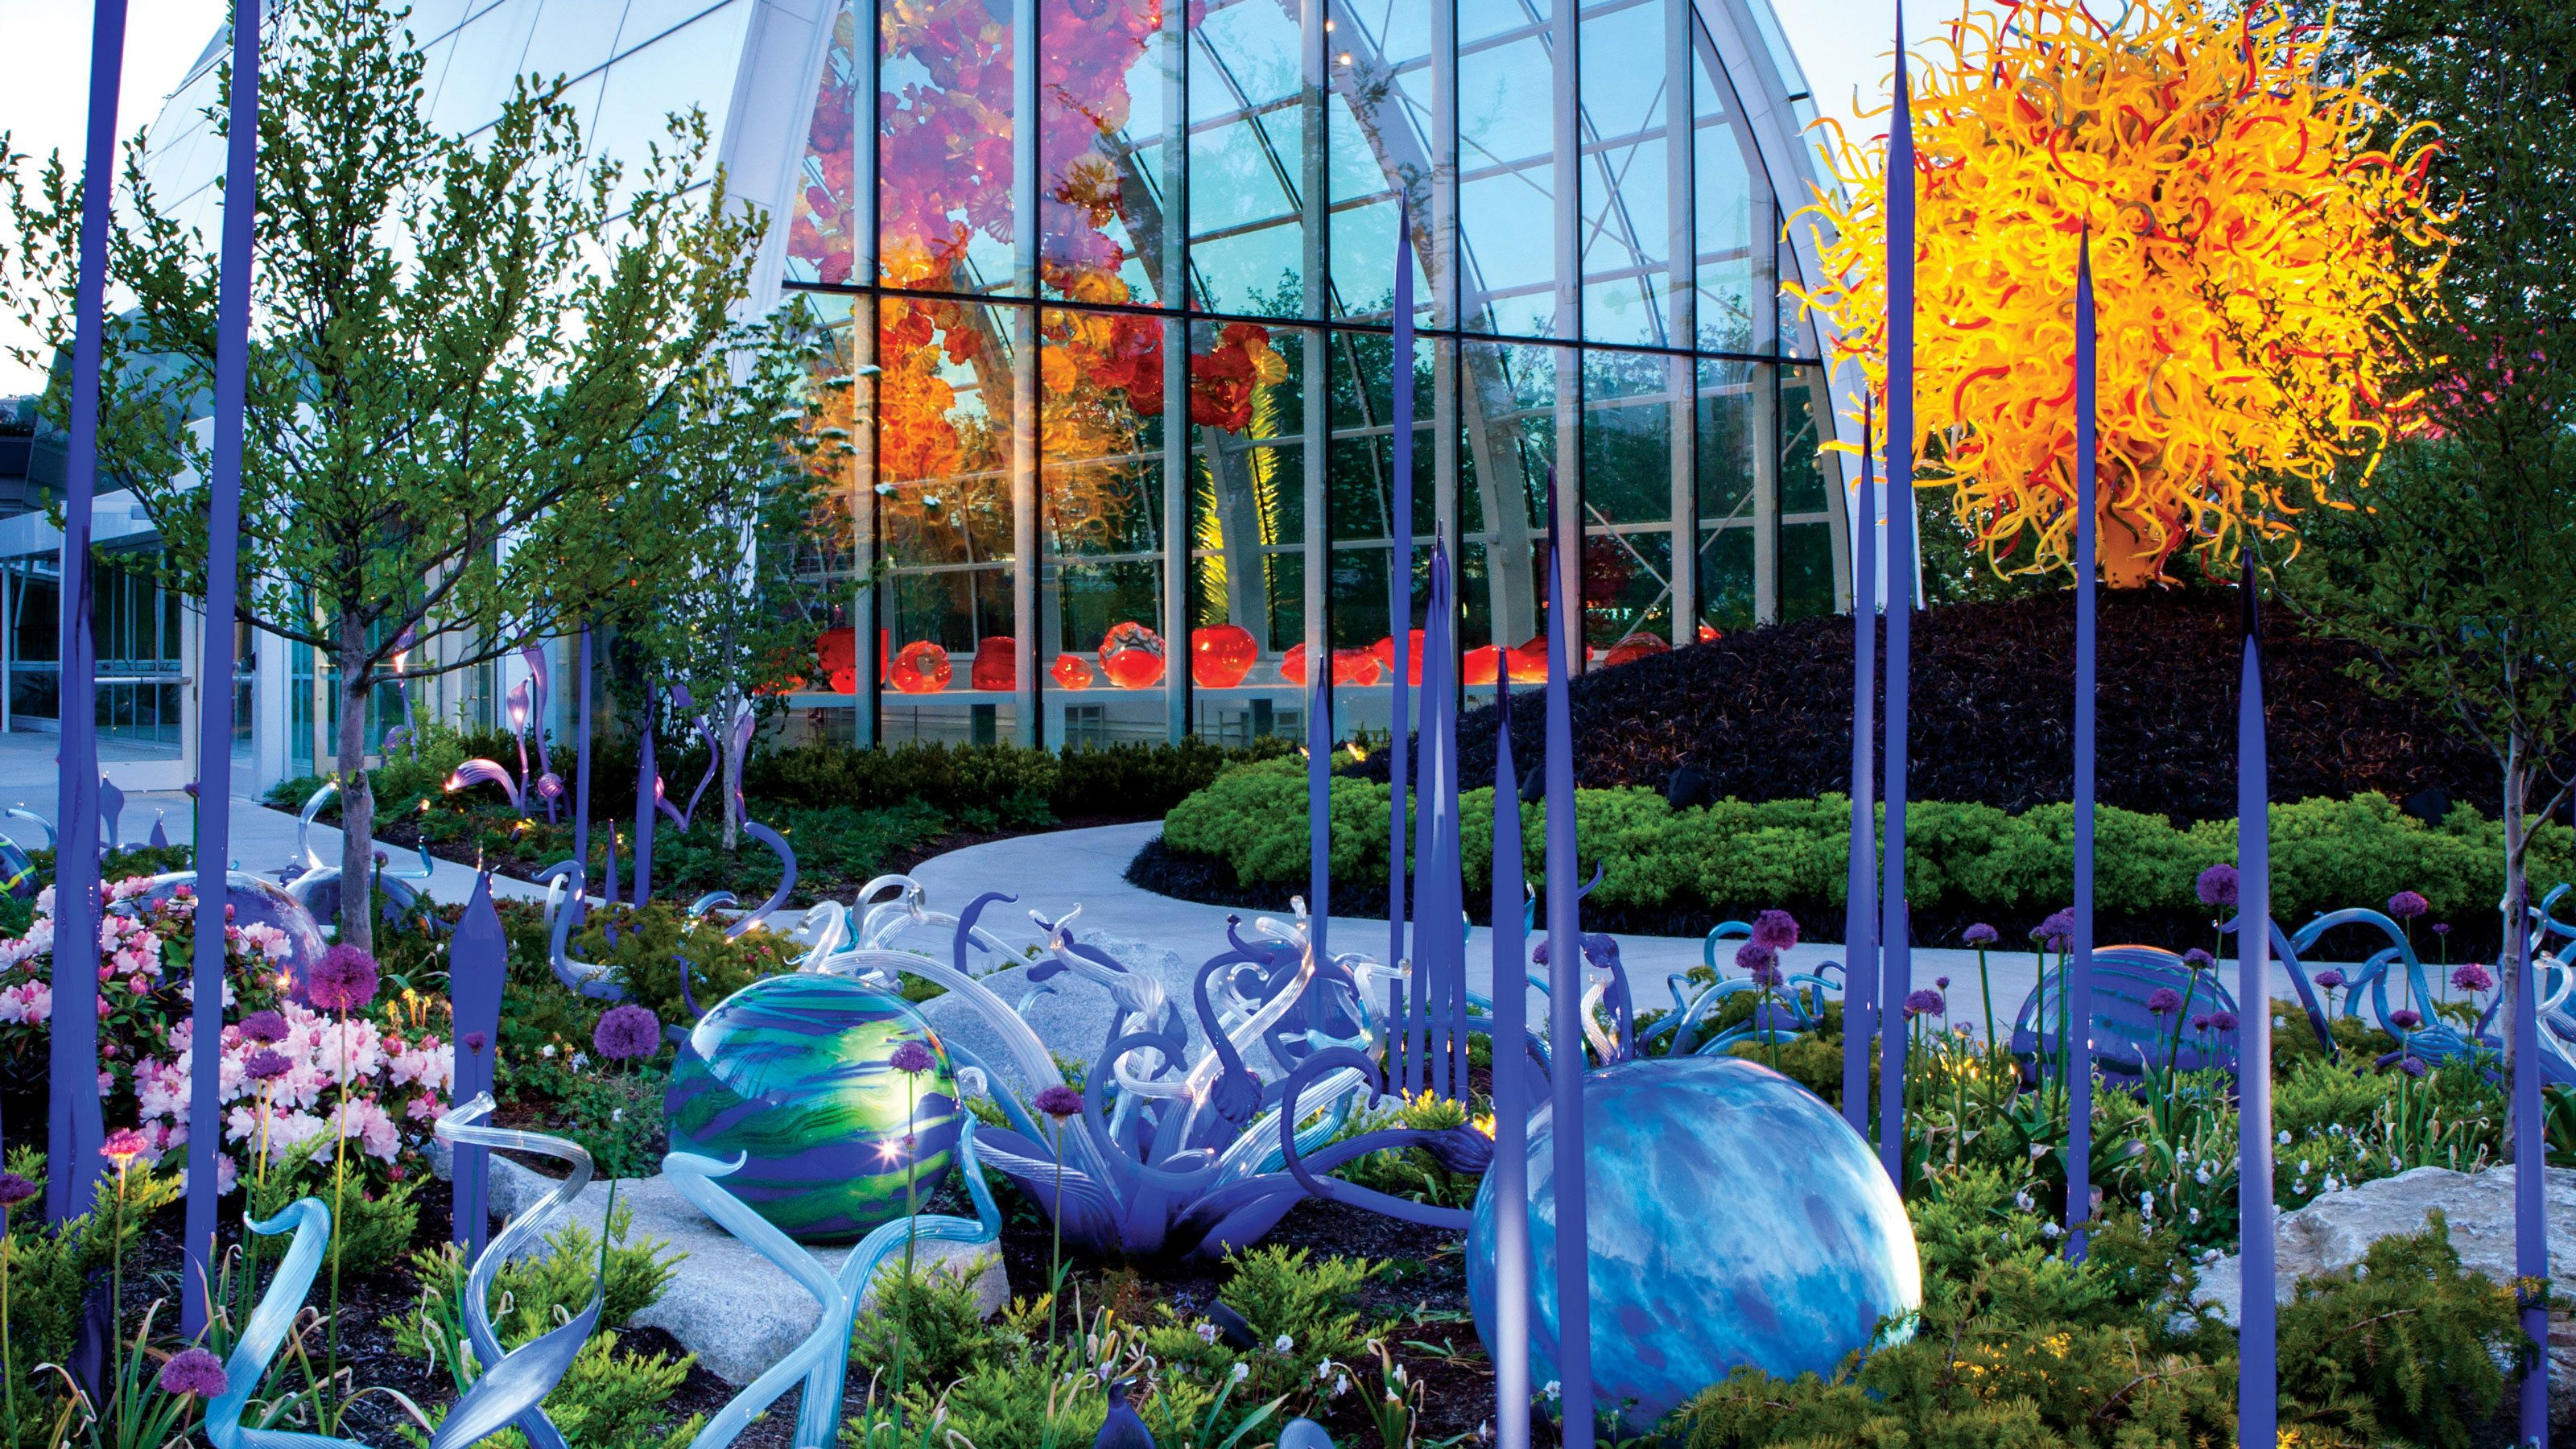 Glass sculptures in the garden at the Chihuly Garden and Glass in Seattle